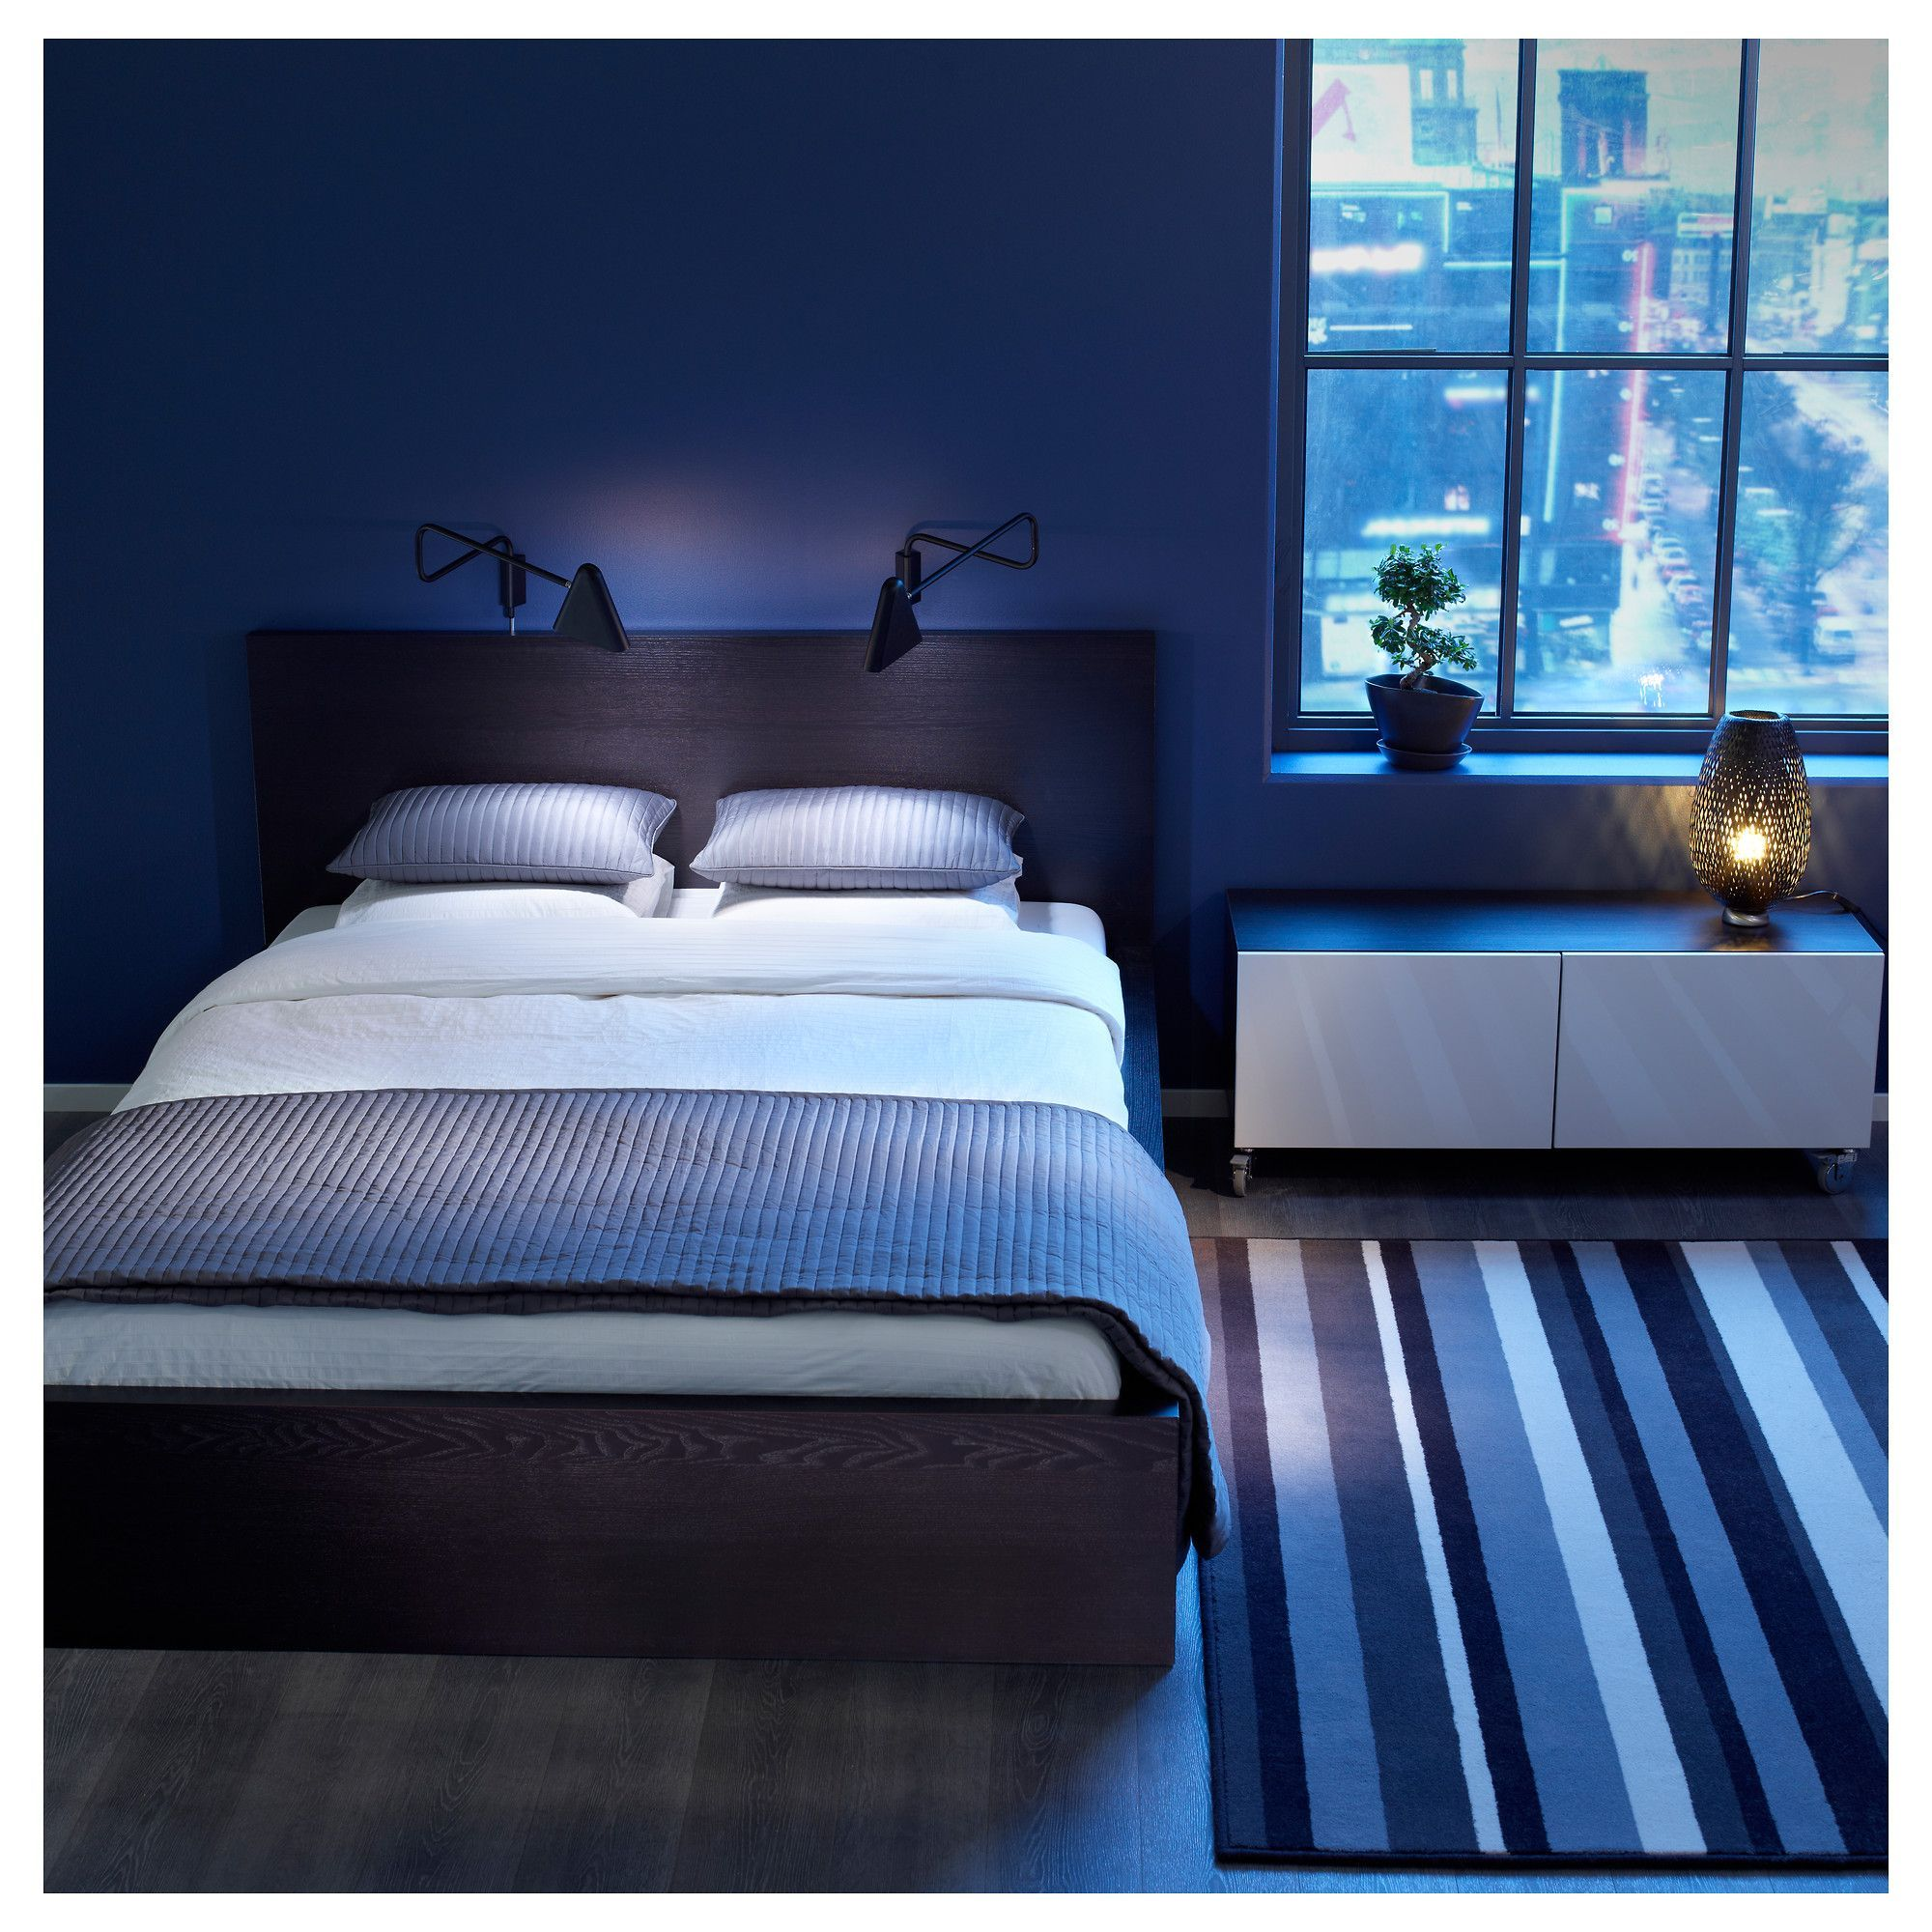 Blue Bedroom For Men simple modern bedroom for men with wooden bed and lighting